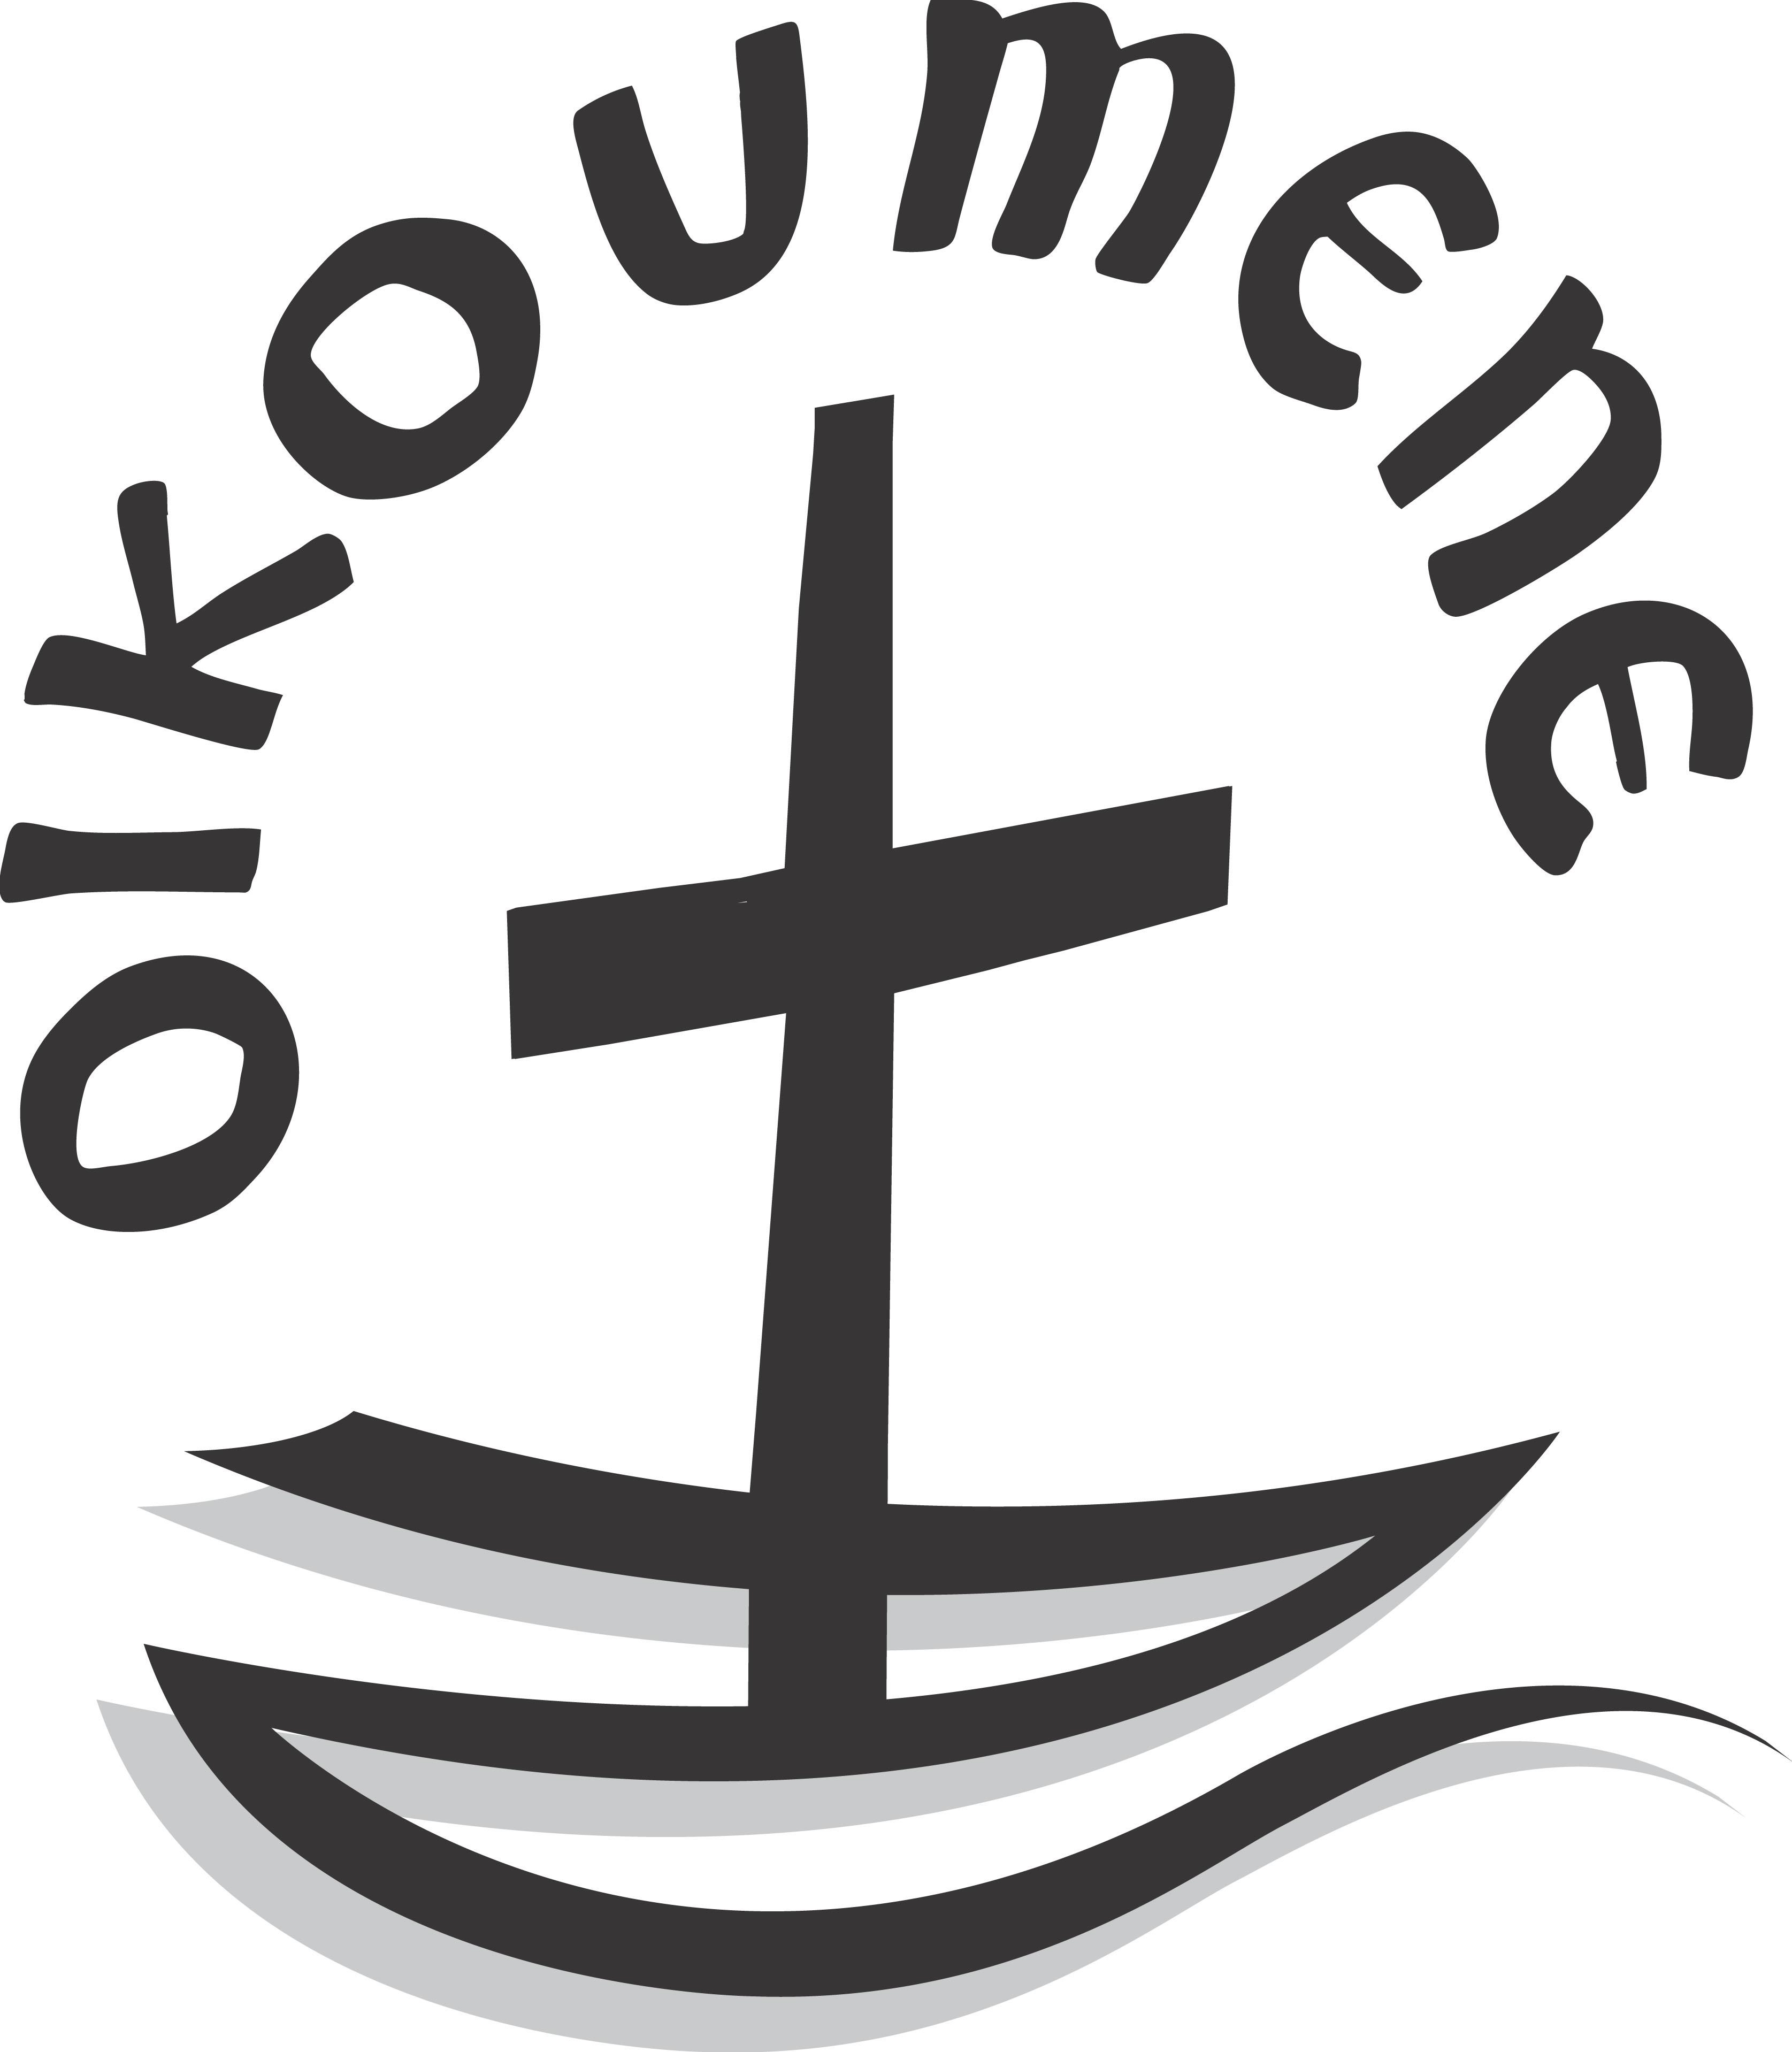 logo for World Council of Churches